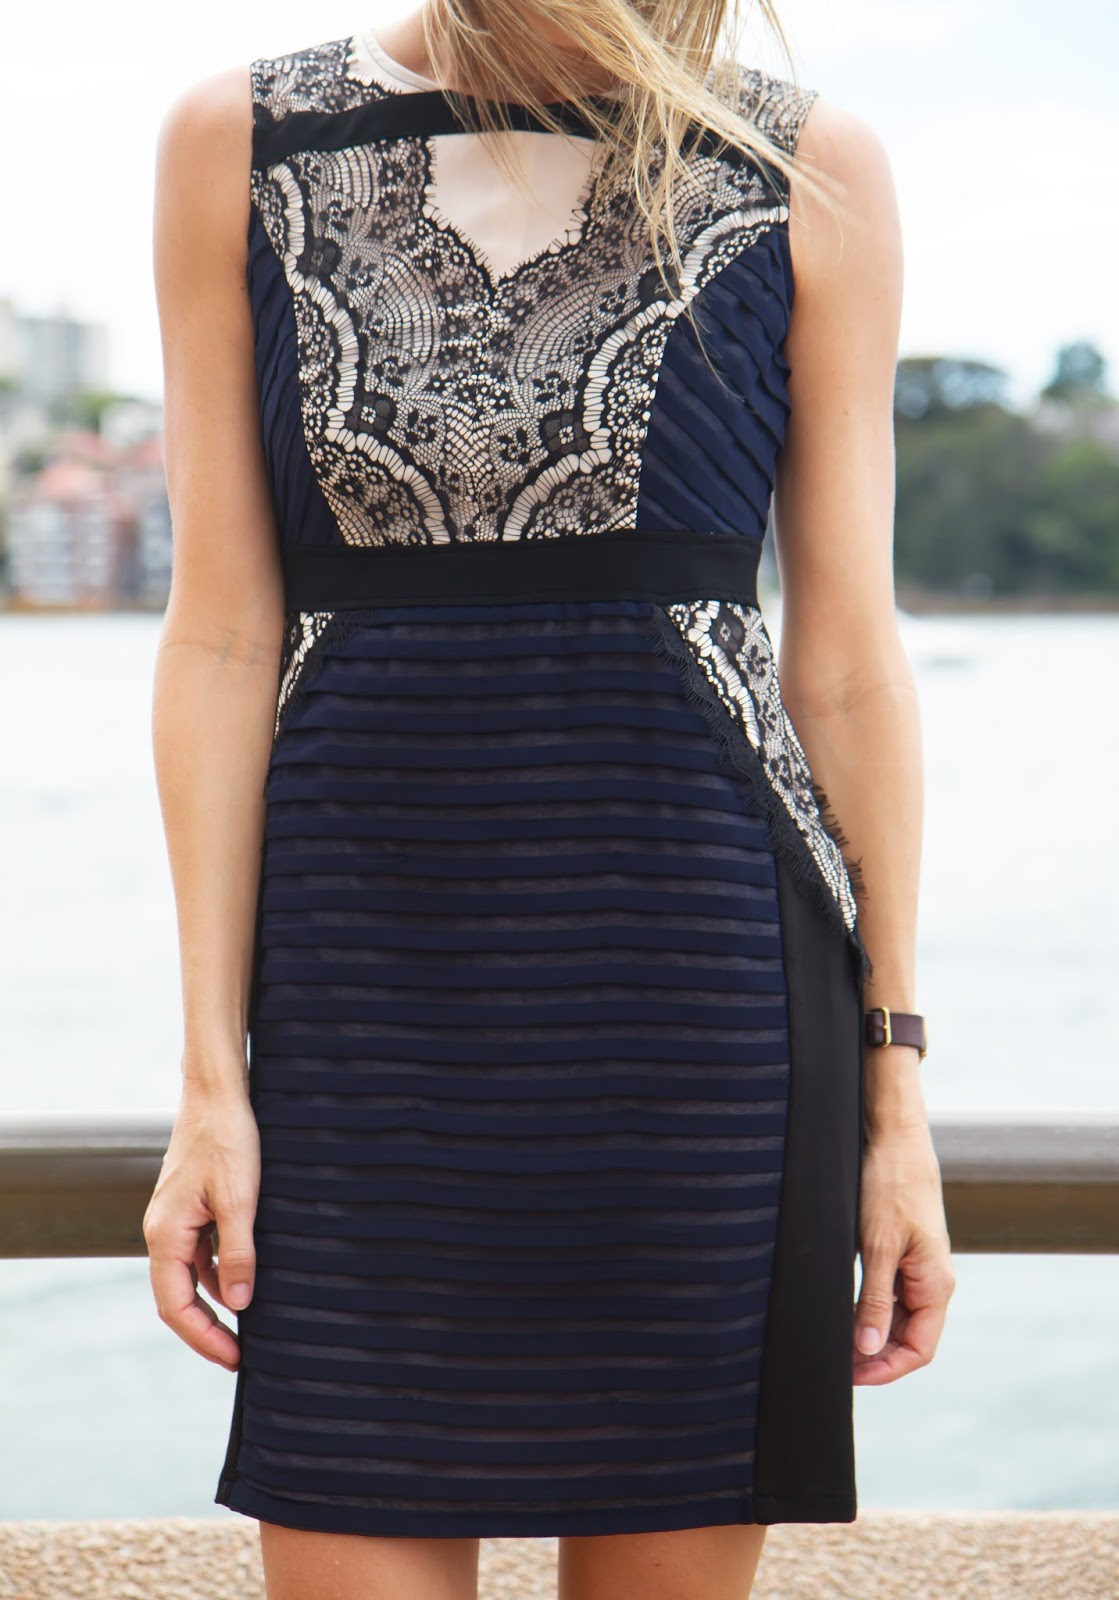 fashion and travel blogger, Alison Hutchinson at the Sydney Harbour Bridge in a workwear navy and black lace dress